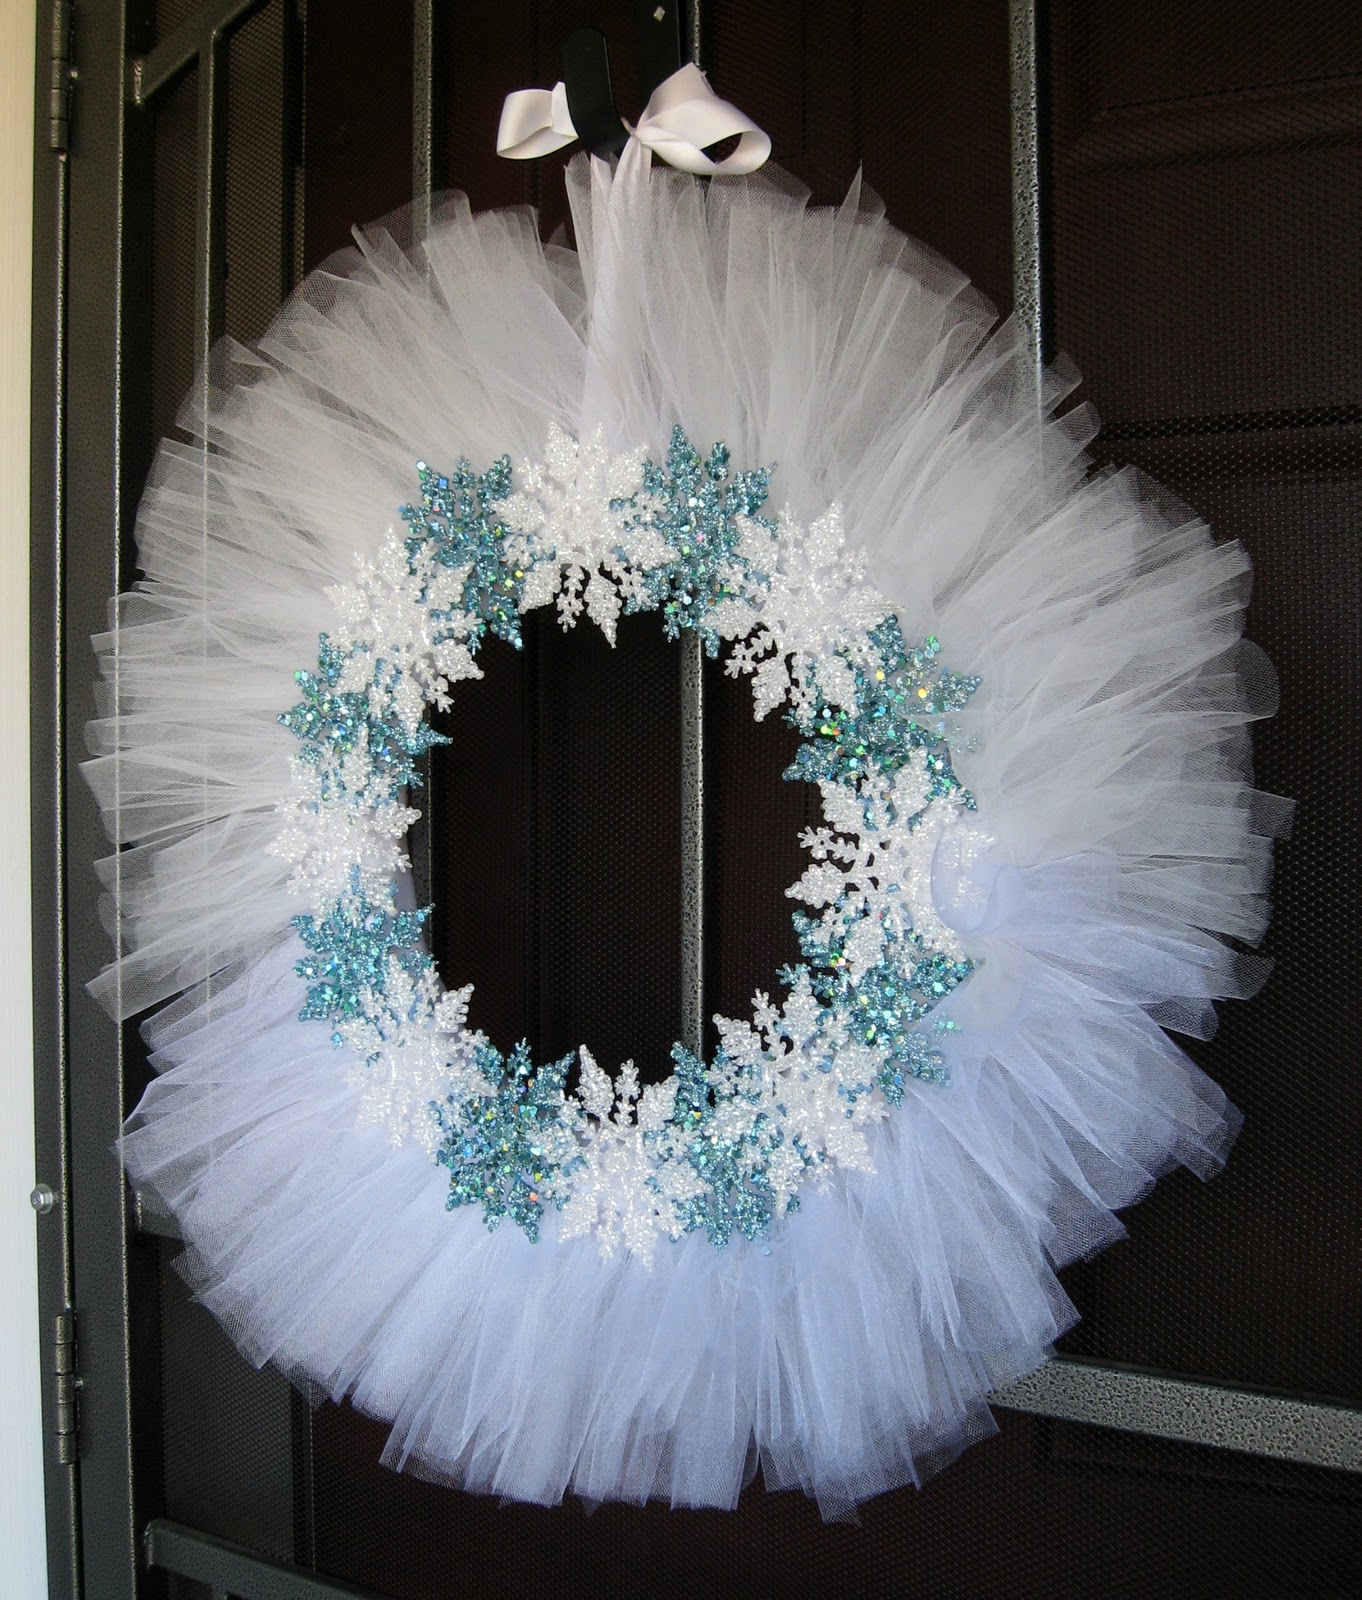 There are a few optional supplies, but really the only things you have to have is a styrofoam wreath form and some tulle. Normally I use ″ wreath forms, but for this you'll want a small 8 inch one. It looks tiny, but in the end it will appear much larger, so it's better to start out with something small! I had 2 spools of tulle that were 50 yards each and I used almost all of it.